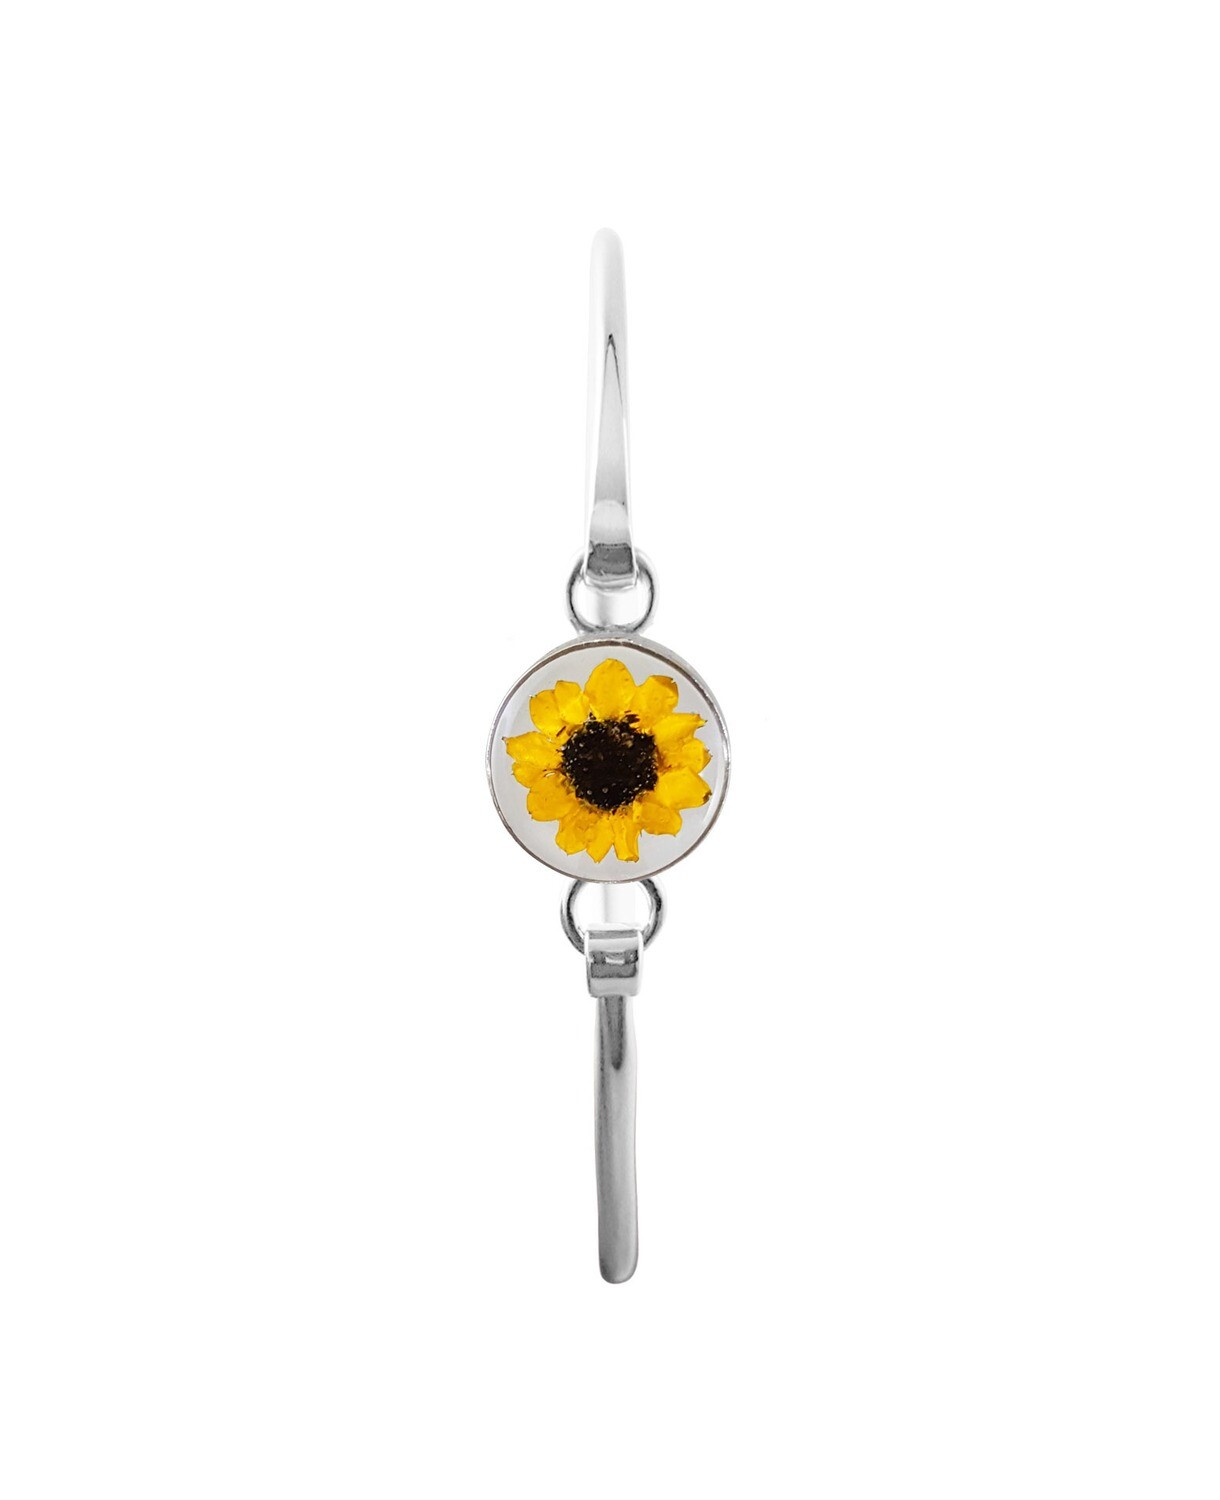 Sunflower Bracelet, Small Circle, Transparent.